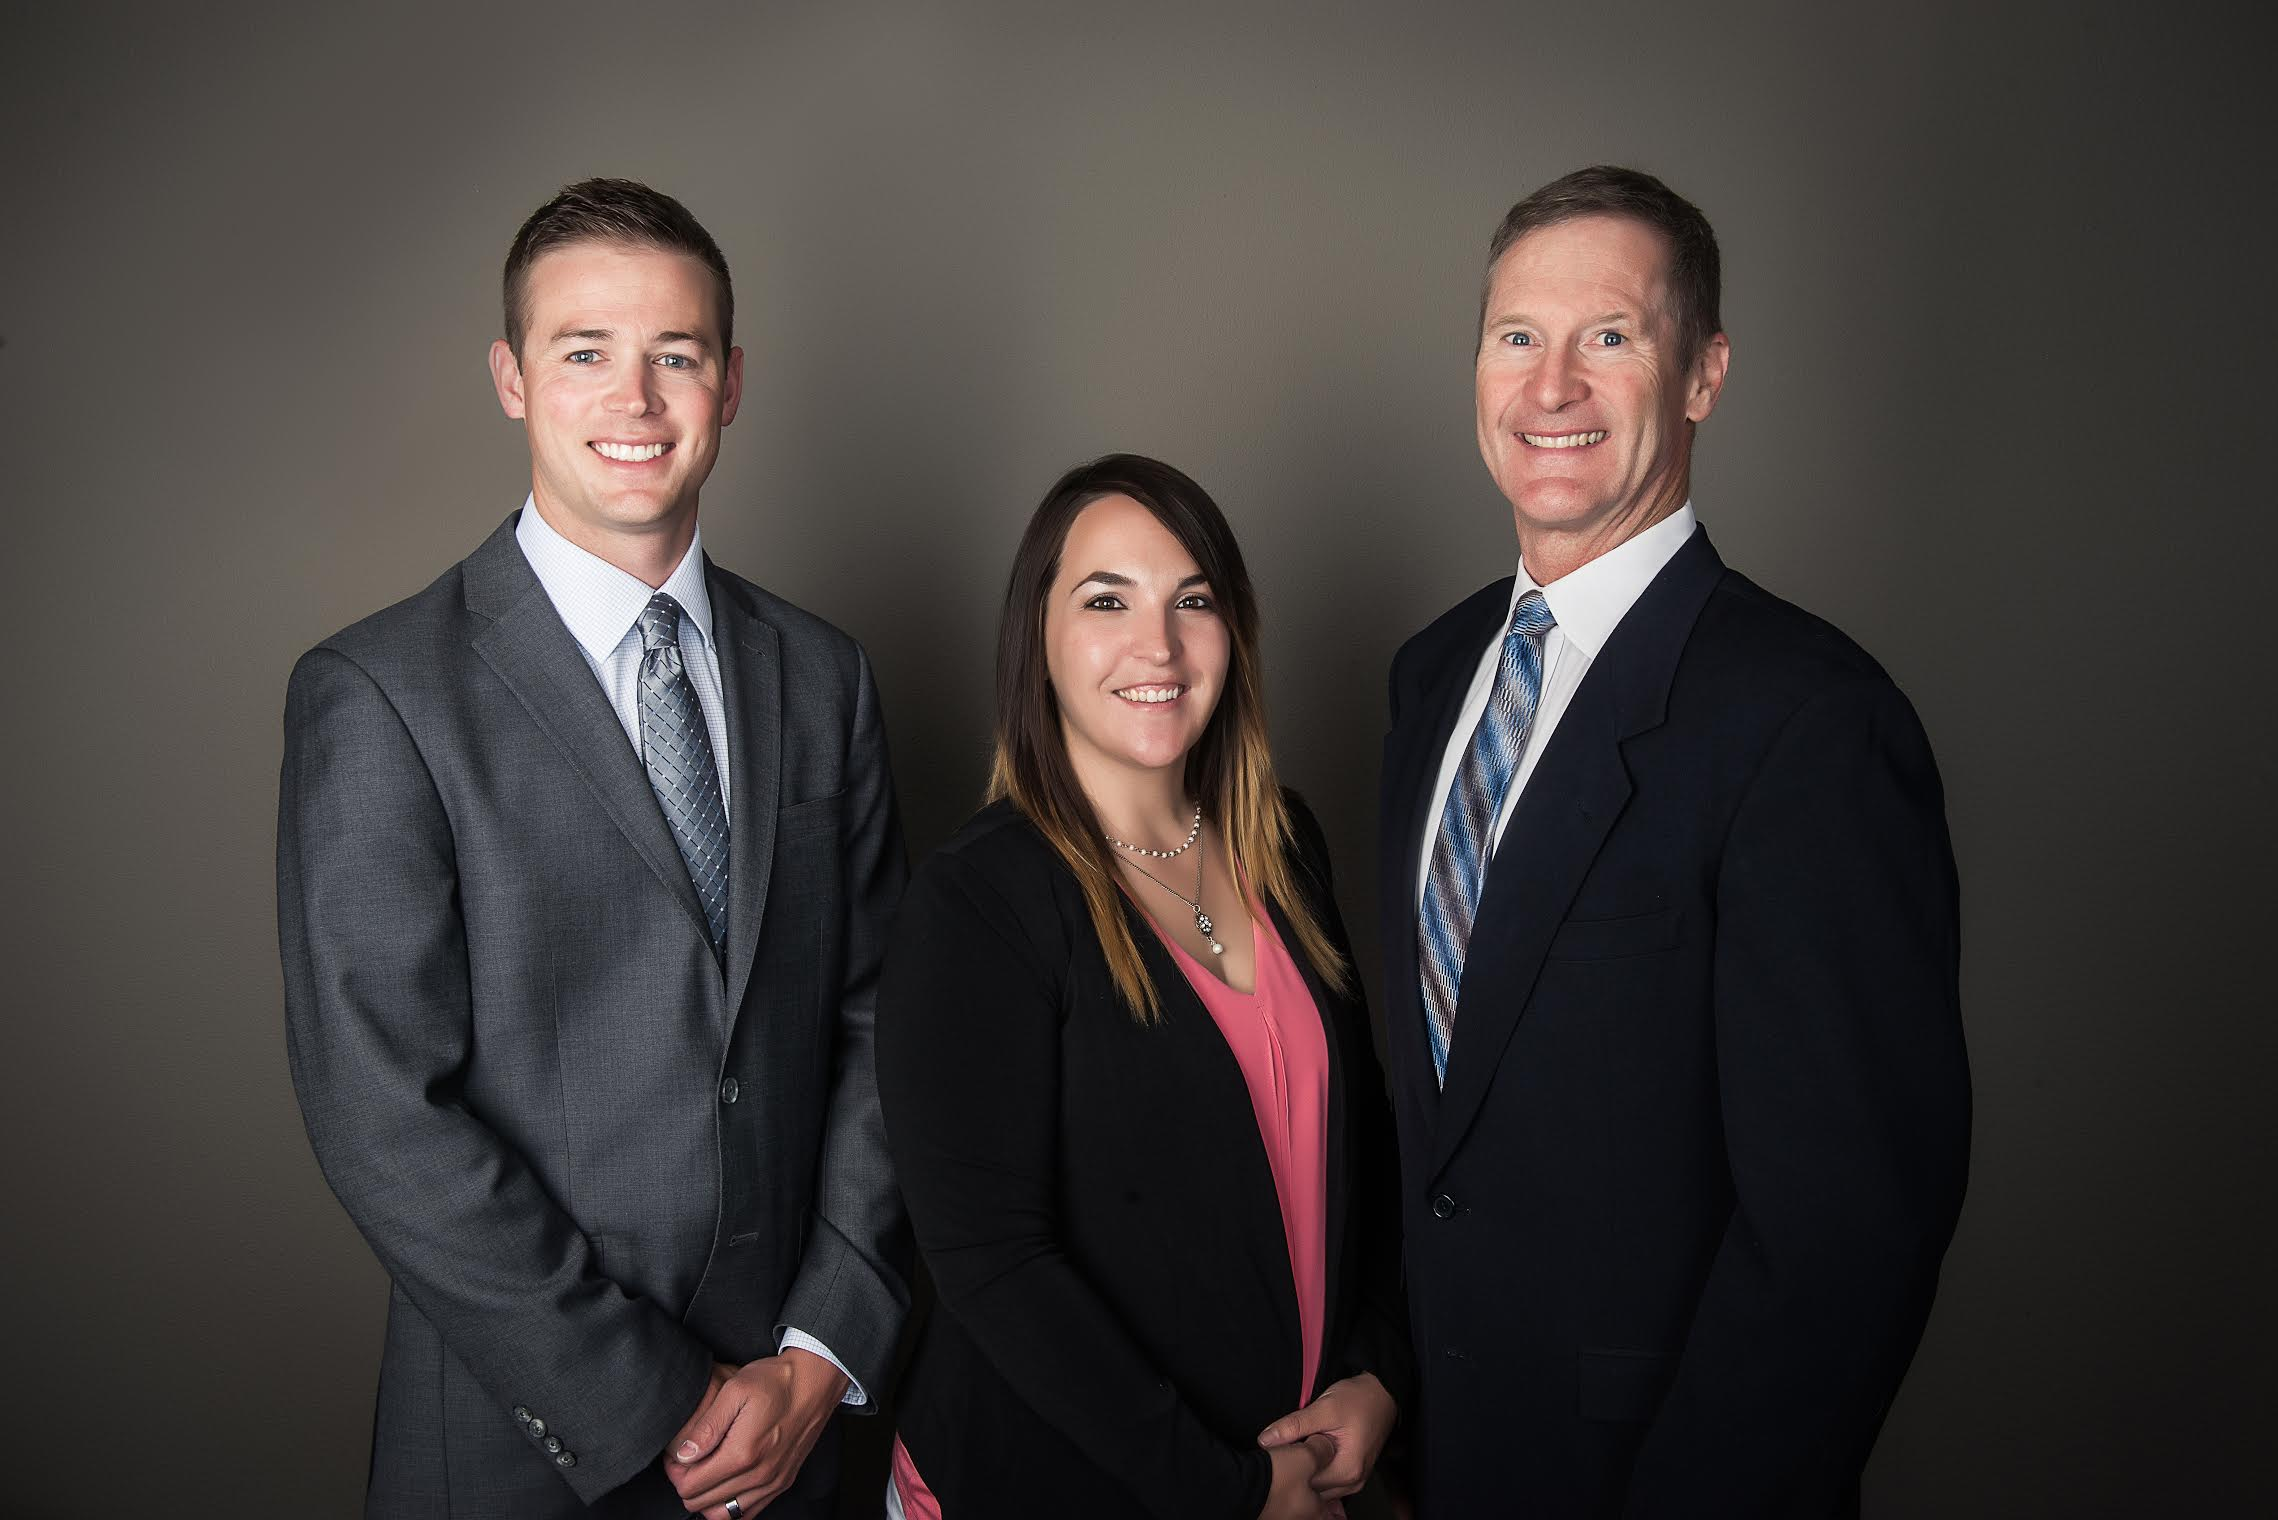 The Ascent Financial Group team